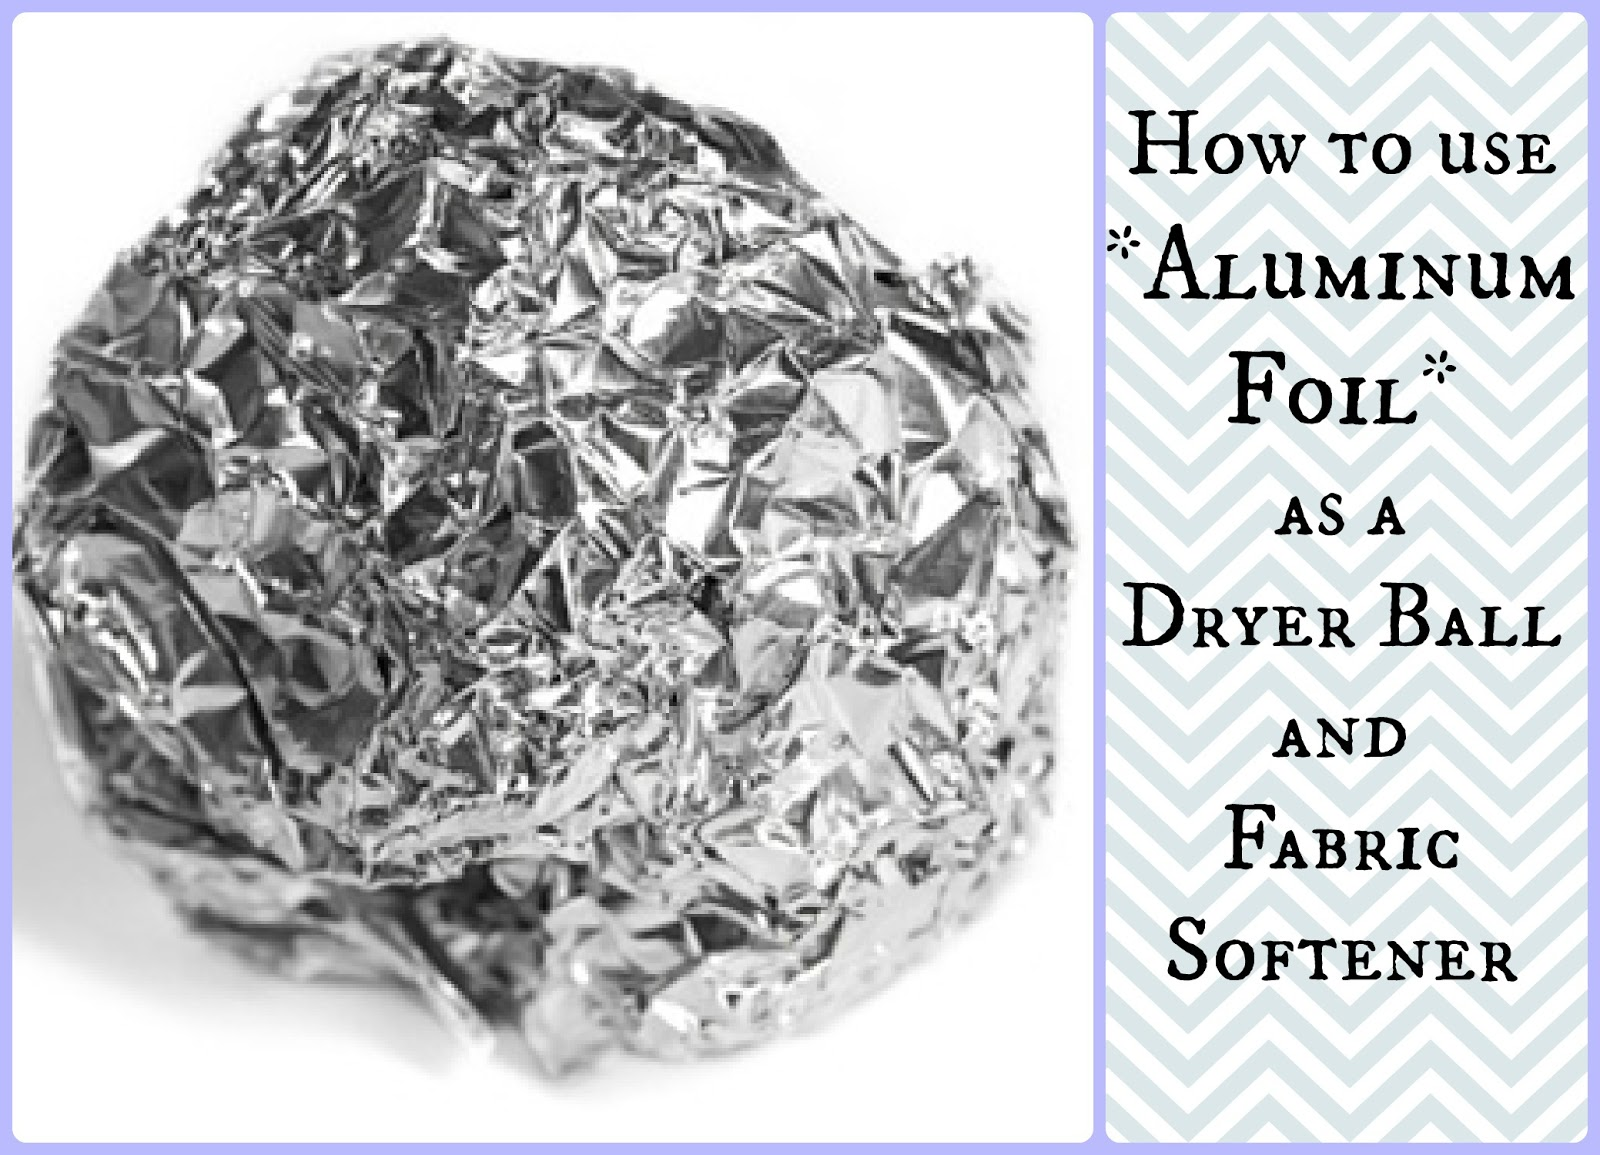 Aluminum foil does not go bad! If you are missing the fresh scent that dryer sheets leave, try this DIY essential oil spray instead! Everyone can feel good about clean laundry and natural smells.